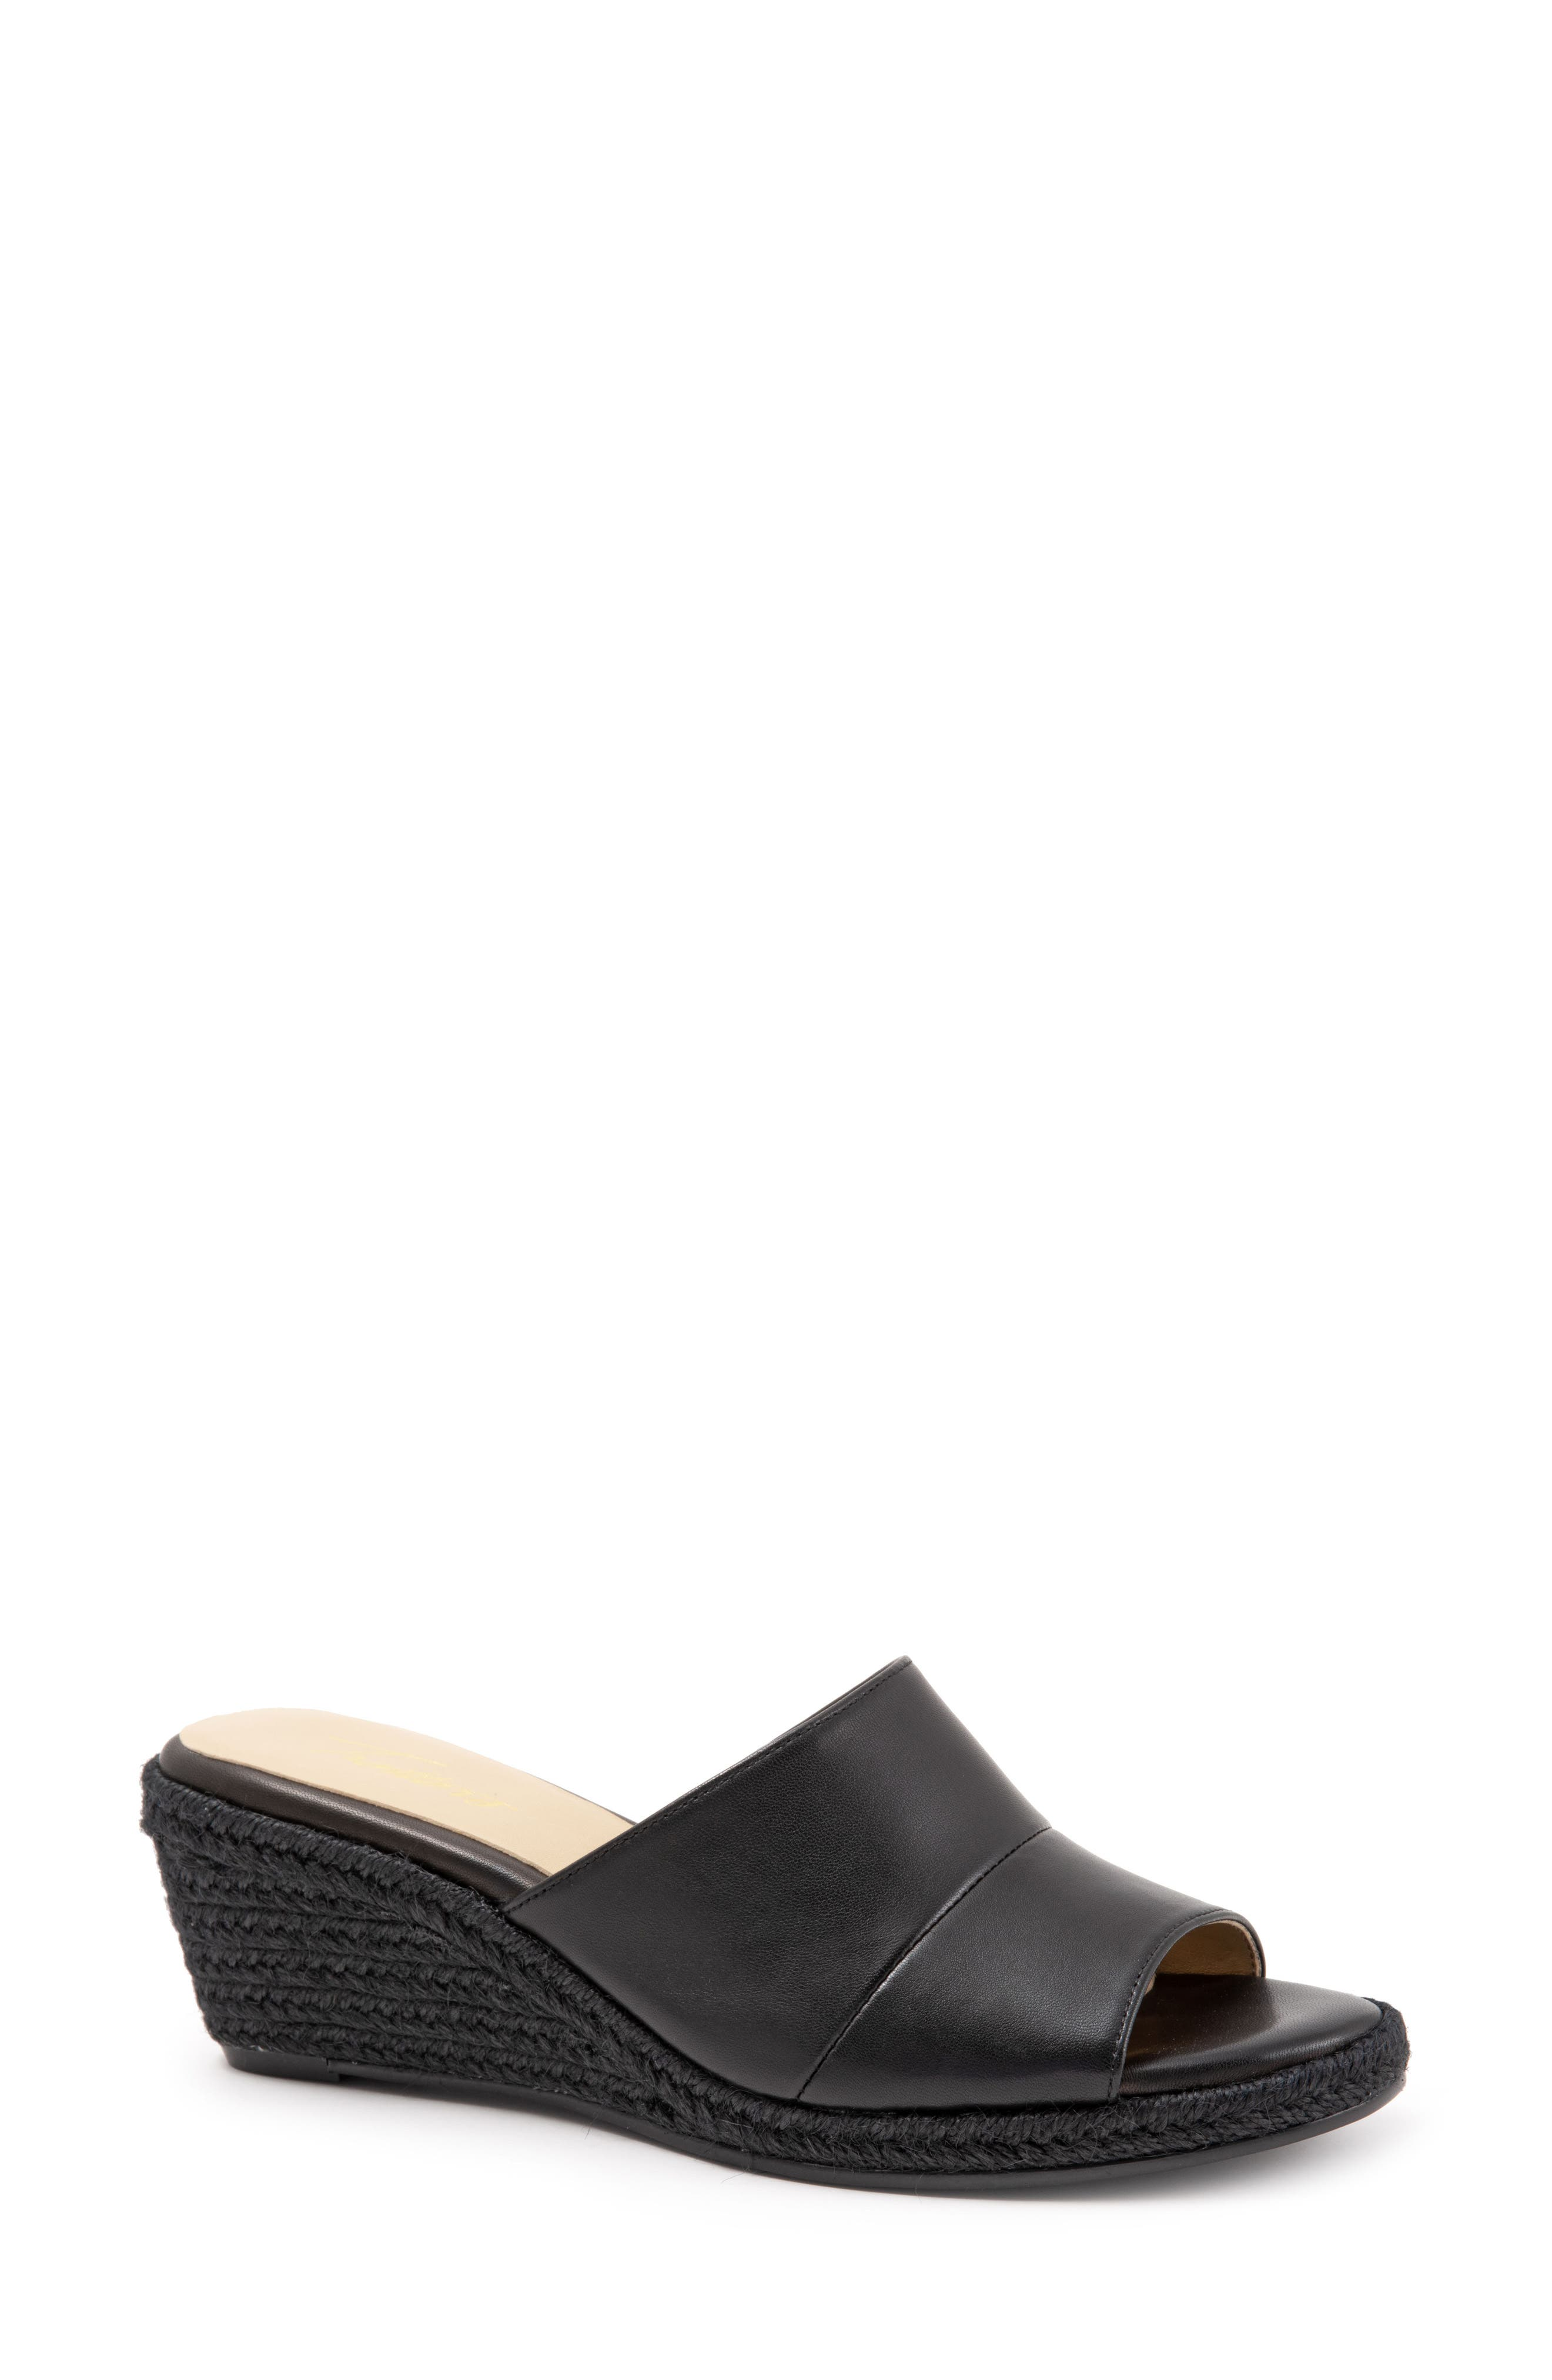 TROTTERS, Colony Wedge Slide Sandal, Main thumbnail 1, color, BLACK LEATHER